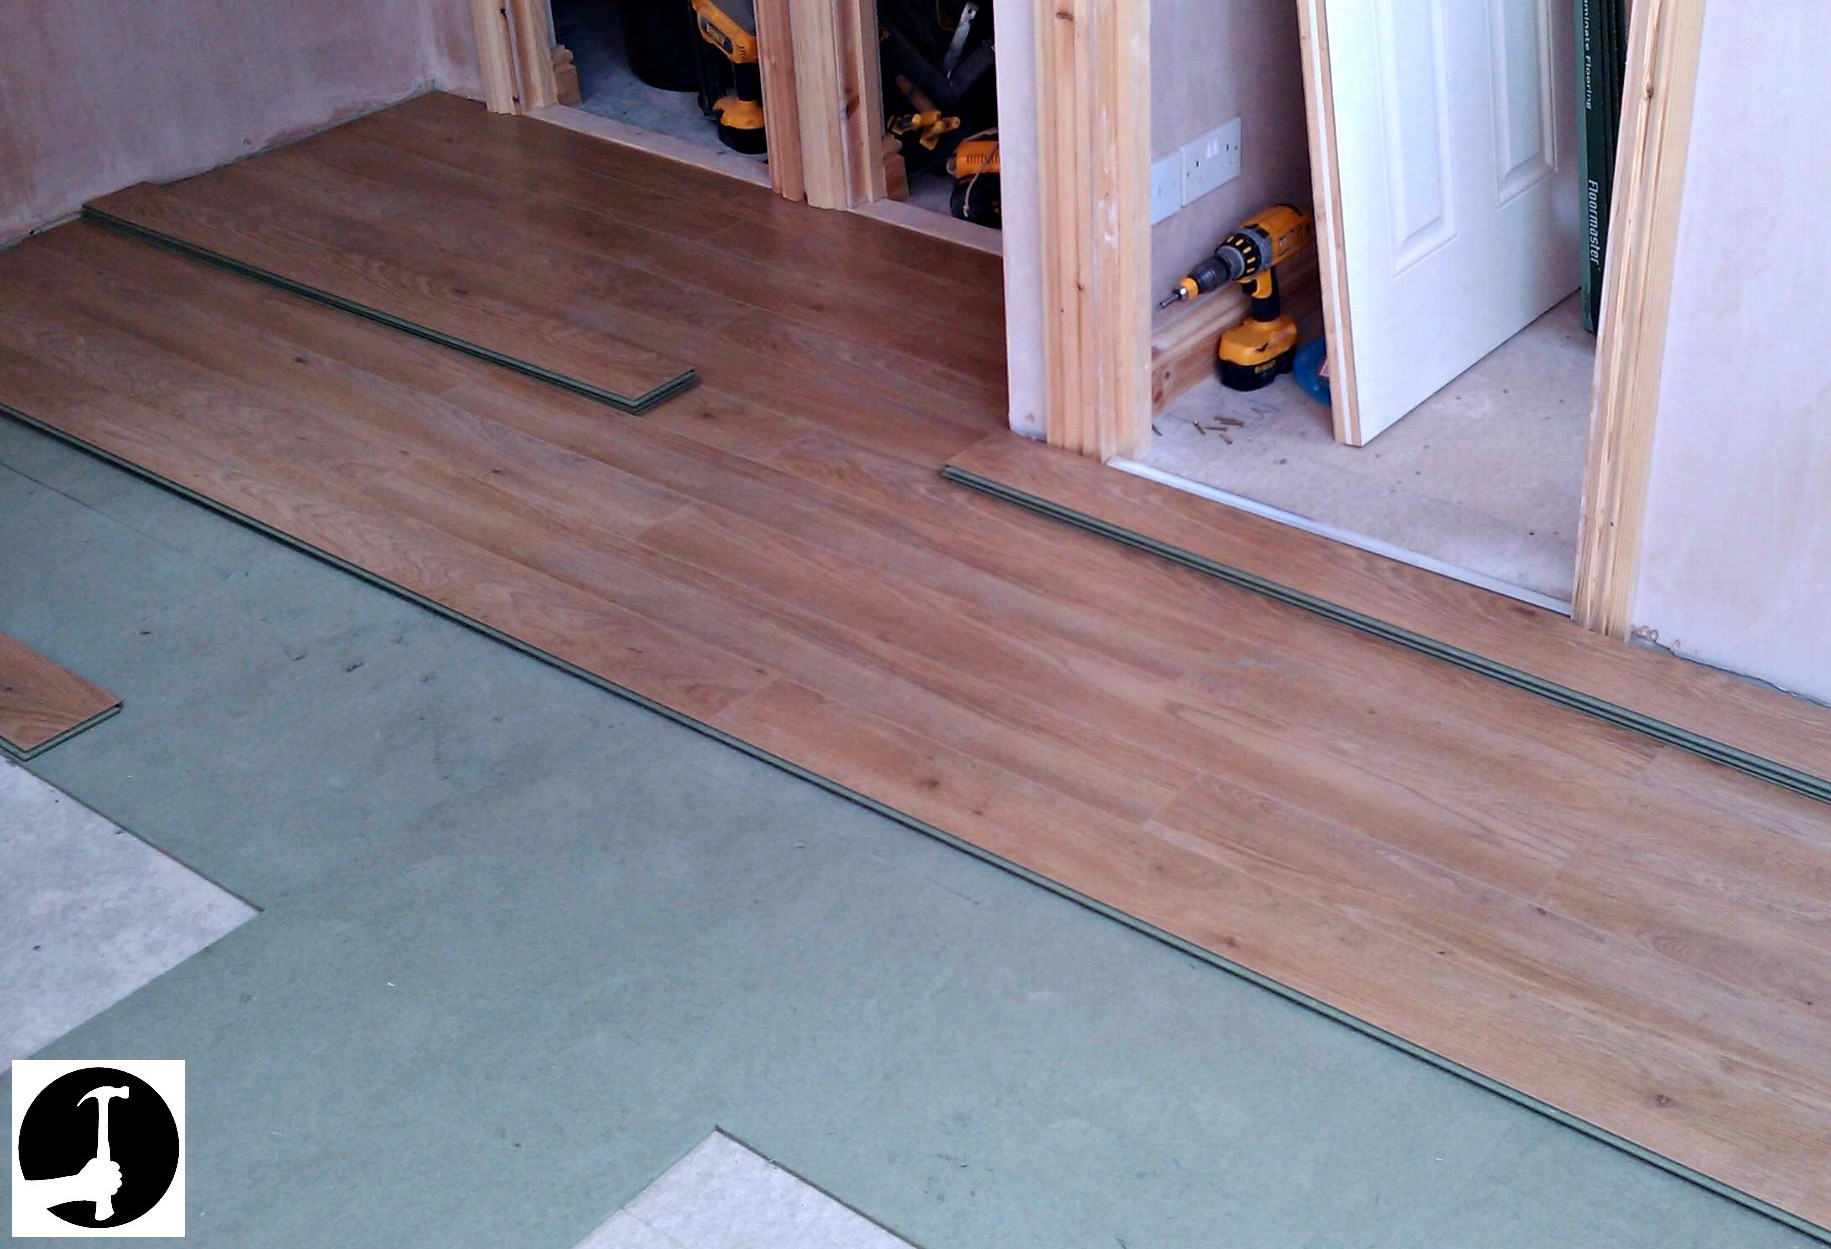 hardwood floor nails coming up of how to install laminate flooring with ease glued glue less systems throughout laminate started